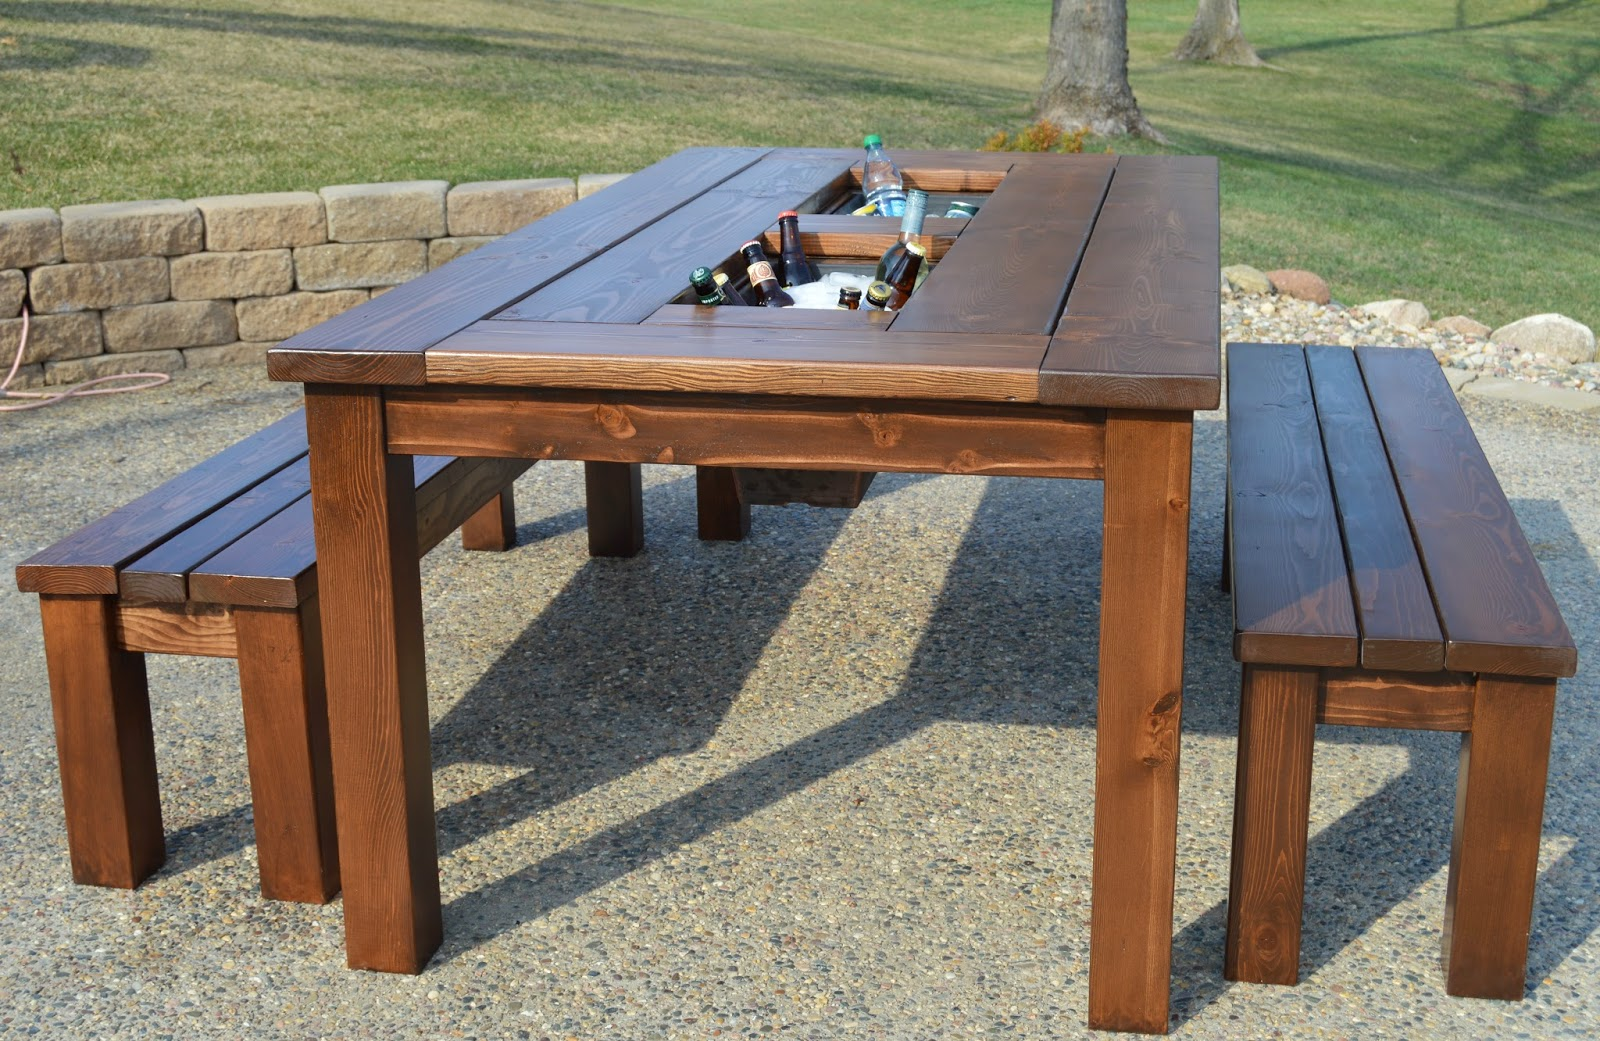 Remodelaholic Build A Patio Cooler Table With Built In Ice Boxes